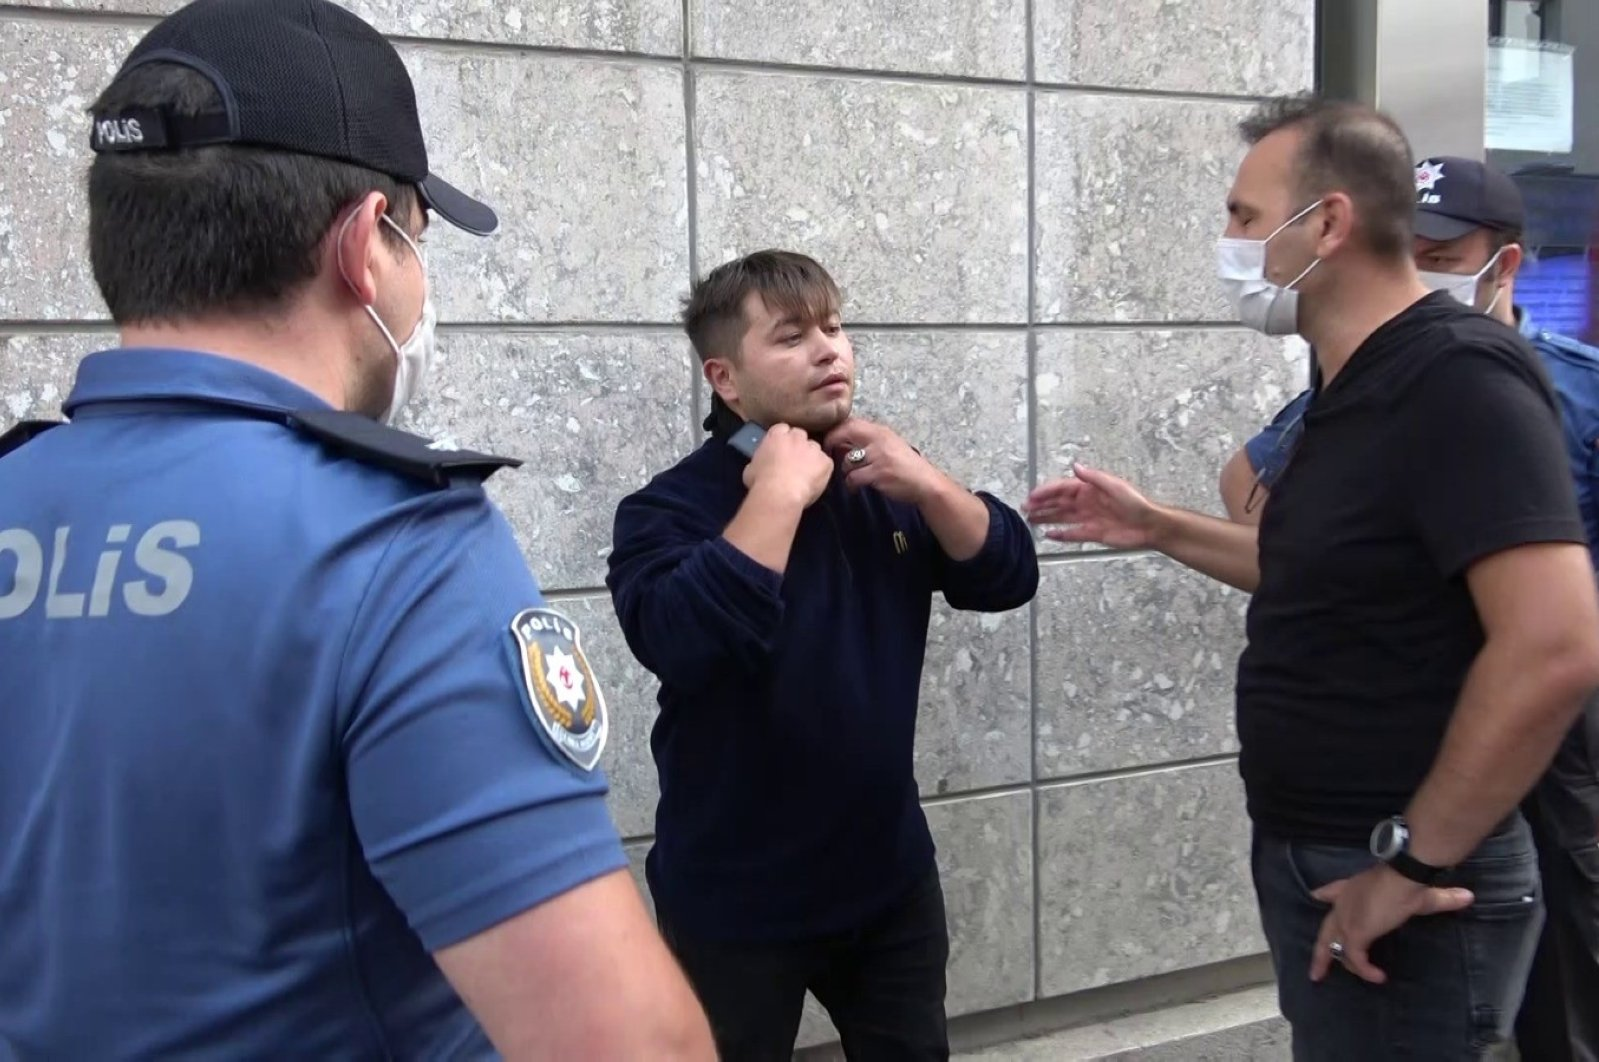 Police officers confront a man not wearing a face mask during an inspection in Istanbul, Turkey, Sept. 23, 2020. (IHA Photo)